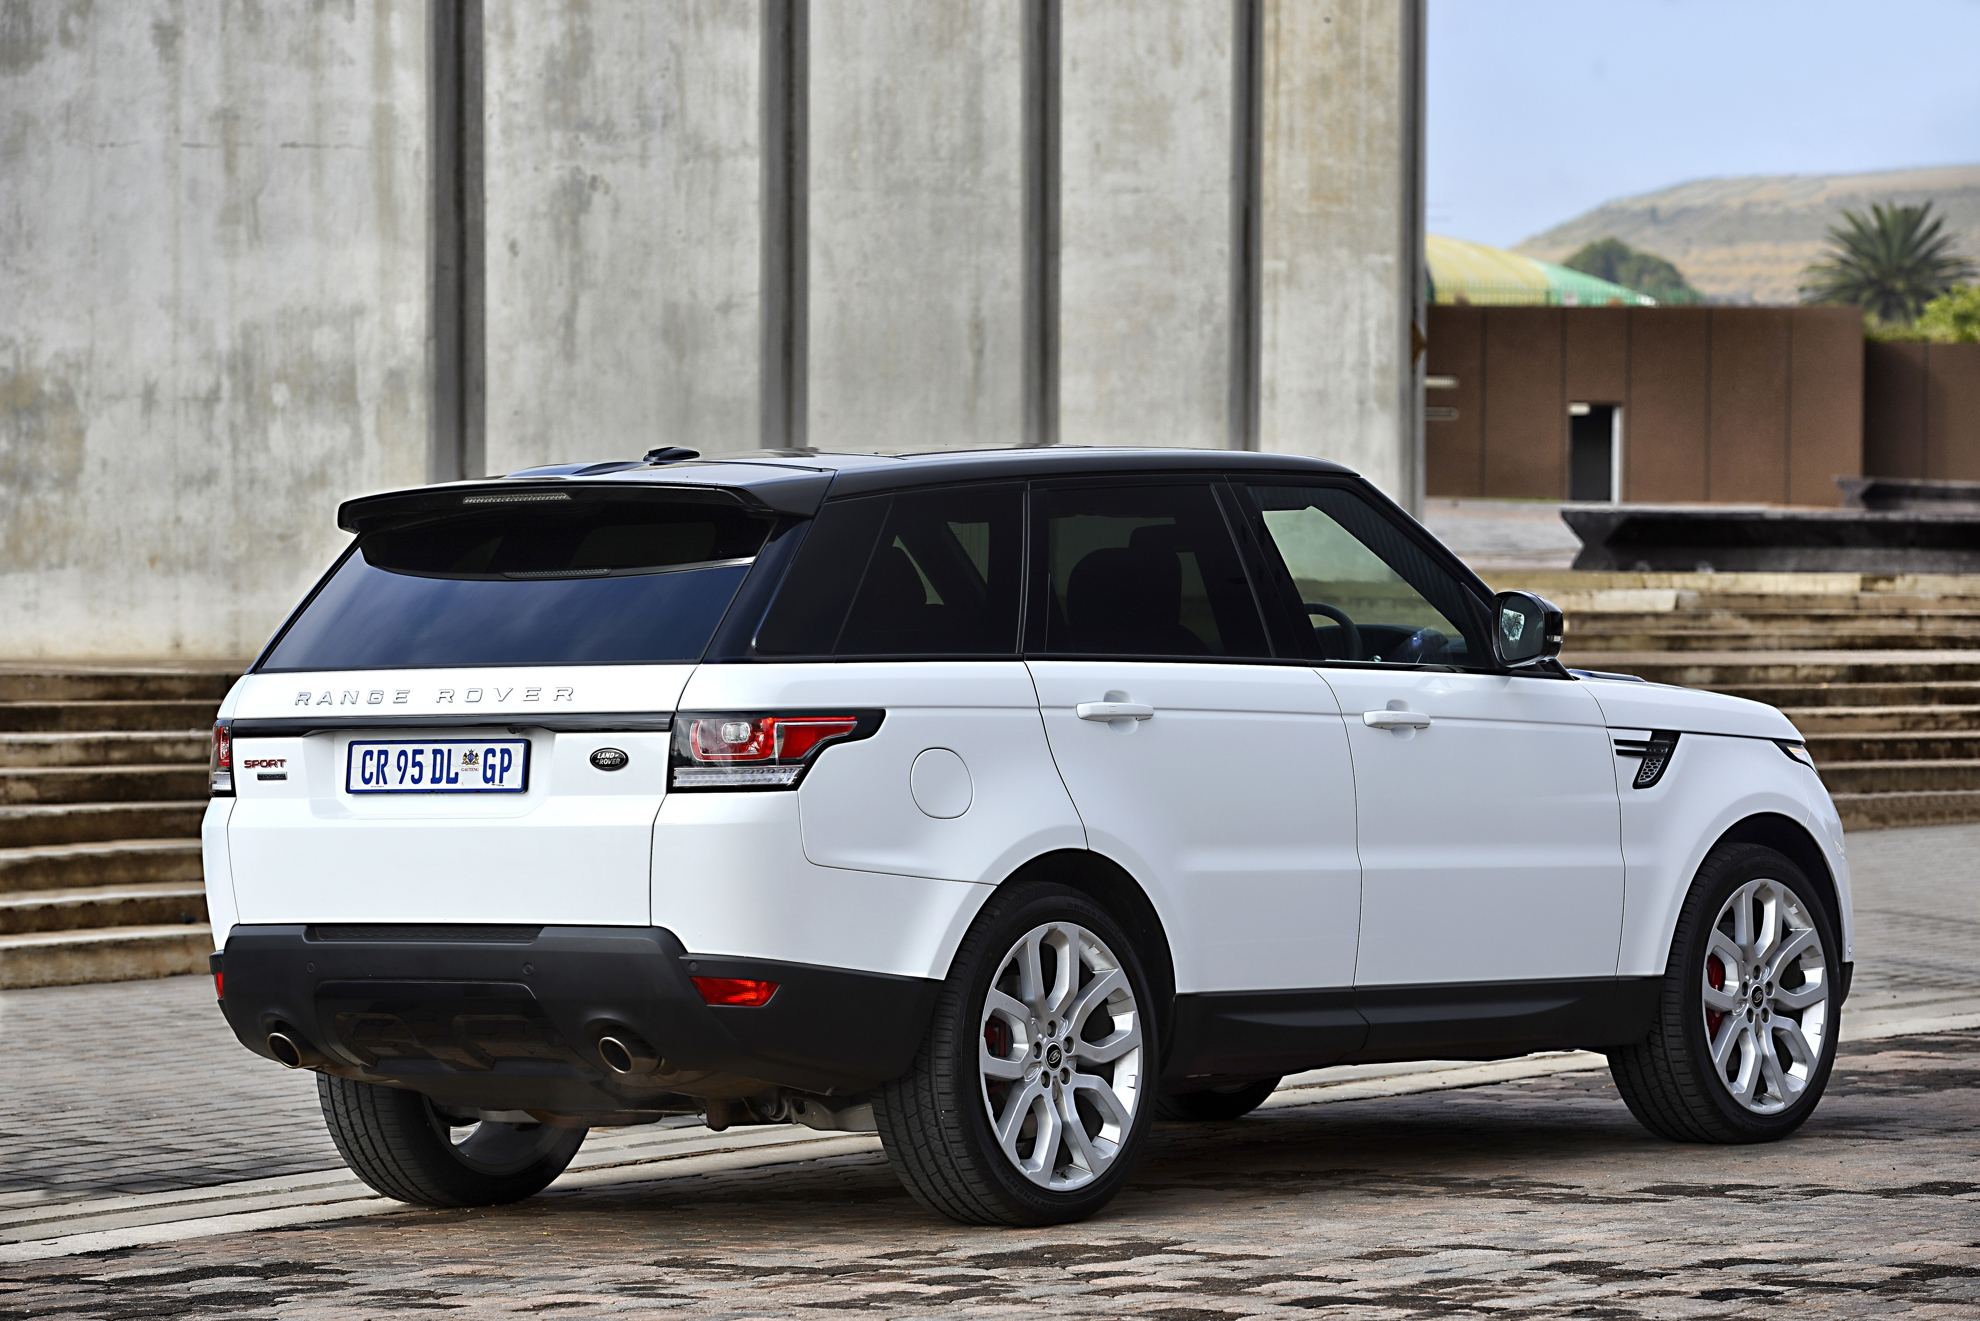 Range Rover South Africa